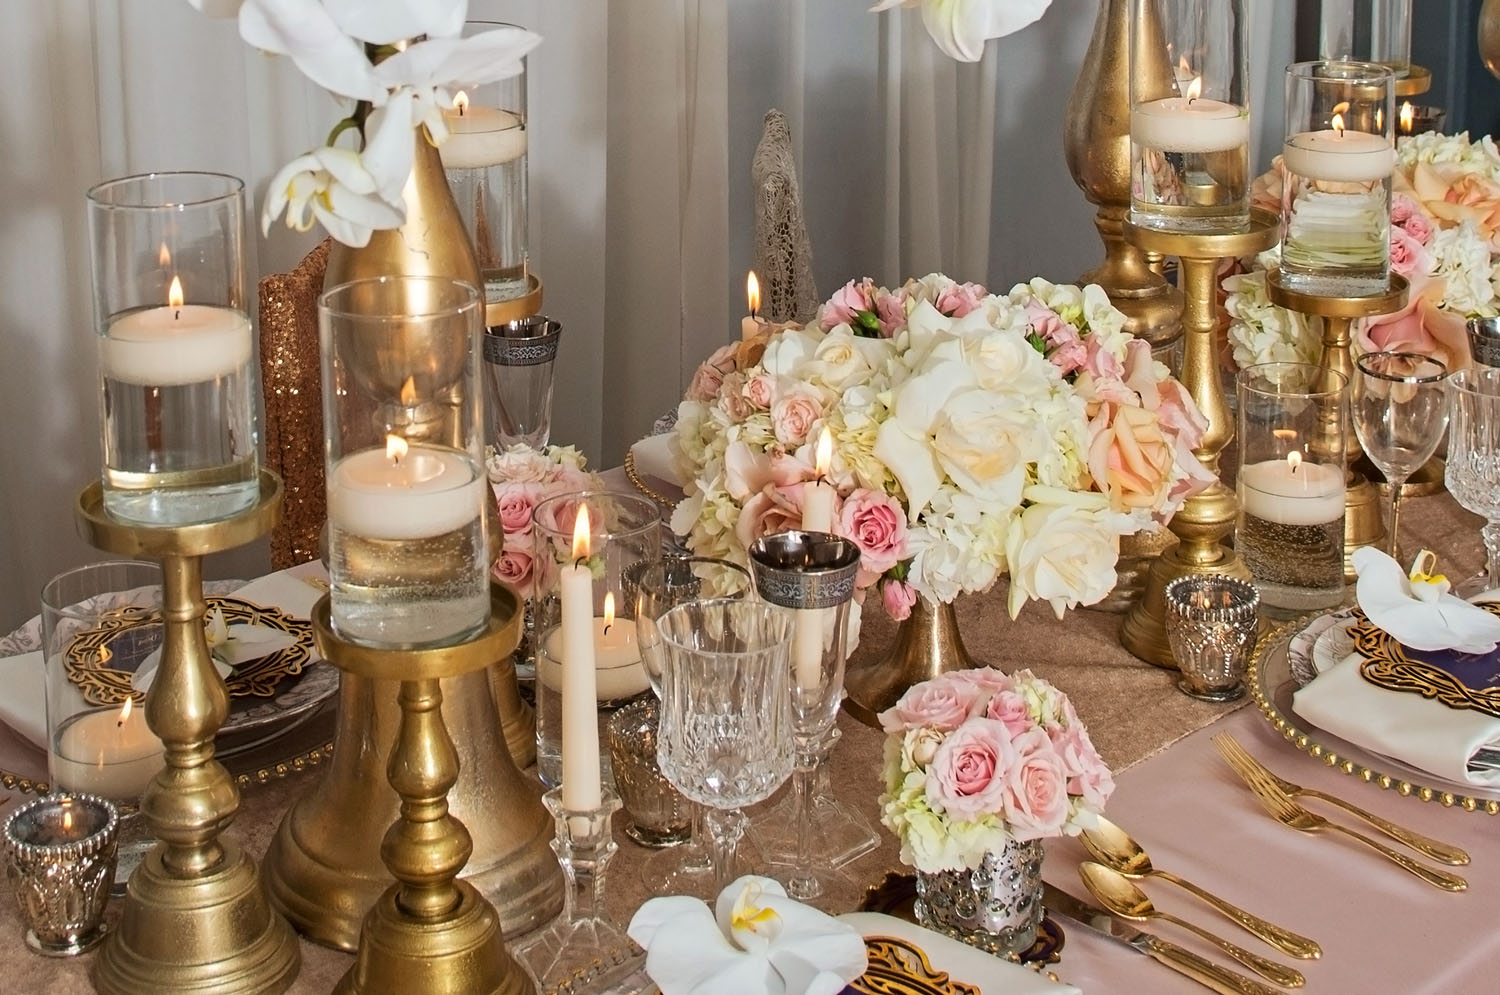 tristate_wedding_and_event_design_high_end.jpg